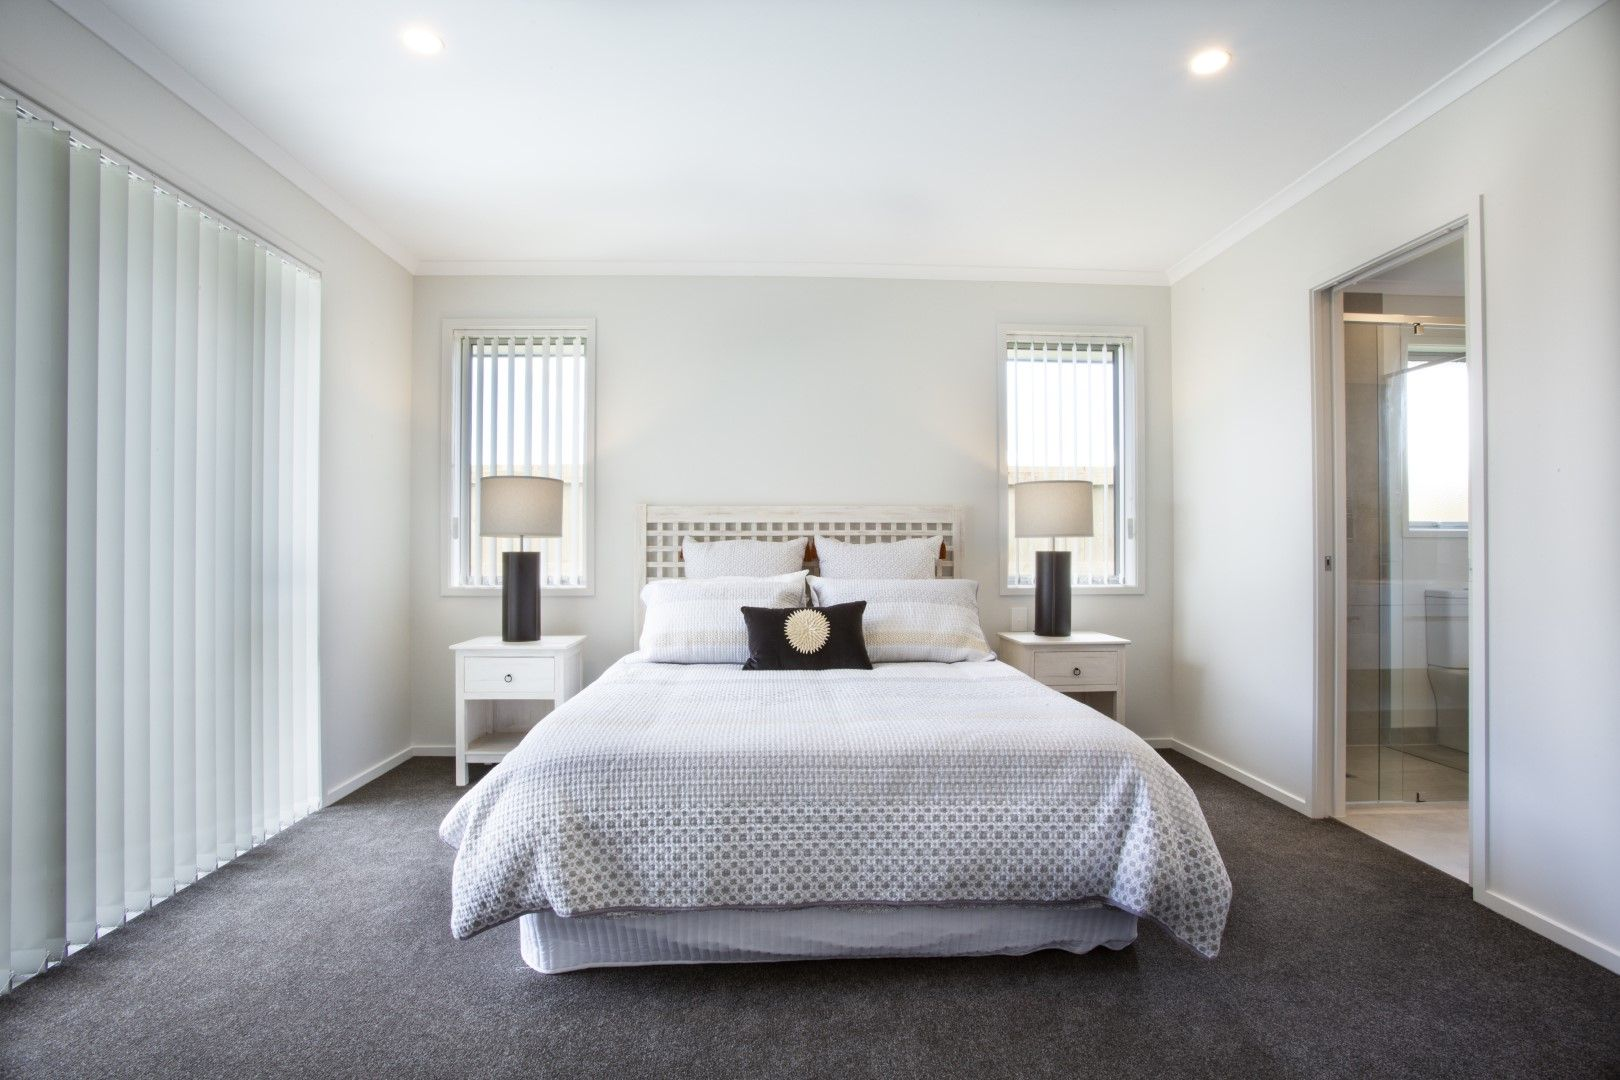 This Master Bedroom Has A Lovely Symmetry With The Matching Double Windows Bedside Tables And Laps 4 Bedroom House Plans 4 Bedroom House Bedroom House Plans